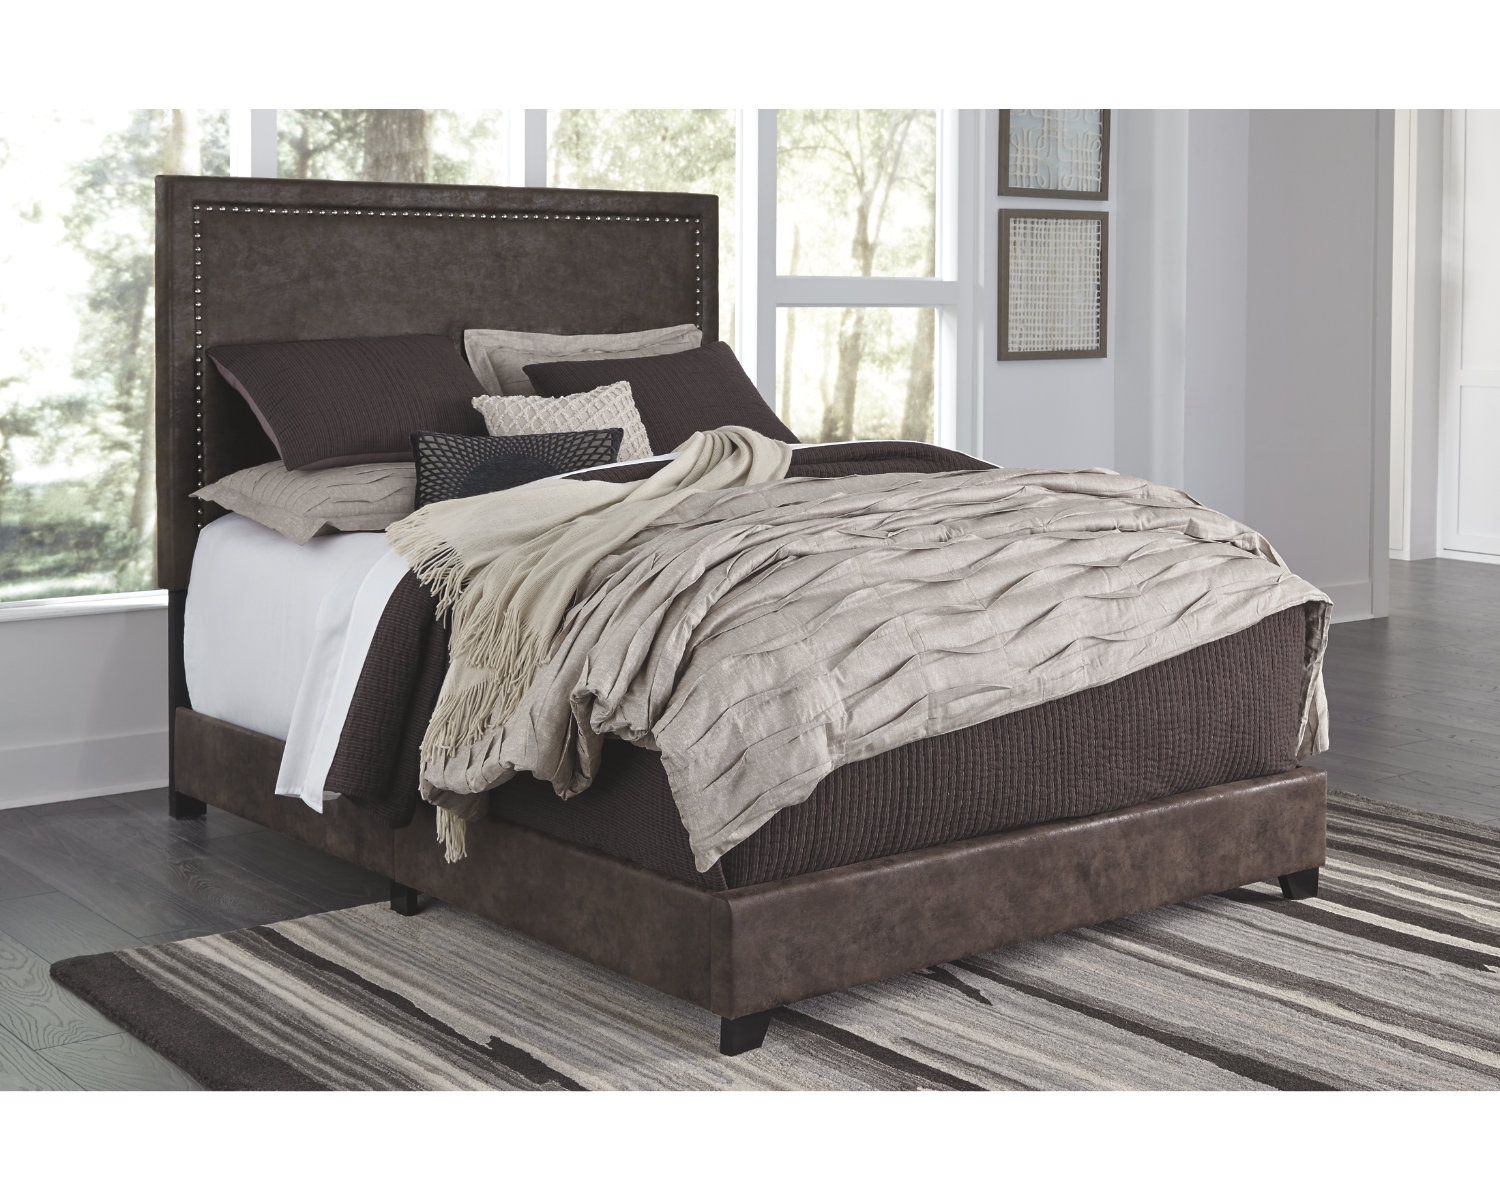 Signature Design By Ashley Dolante Brown Queen Upholstered Bed Walmart Com Walmart Com